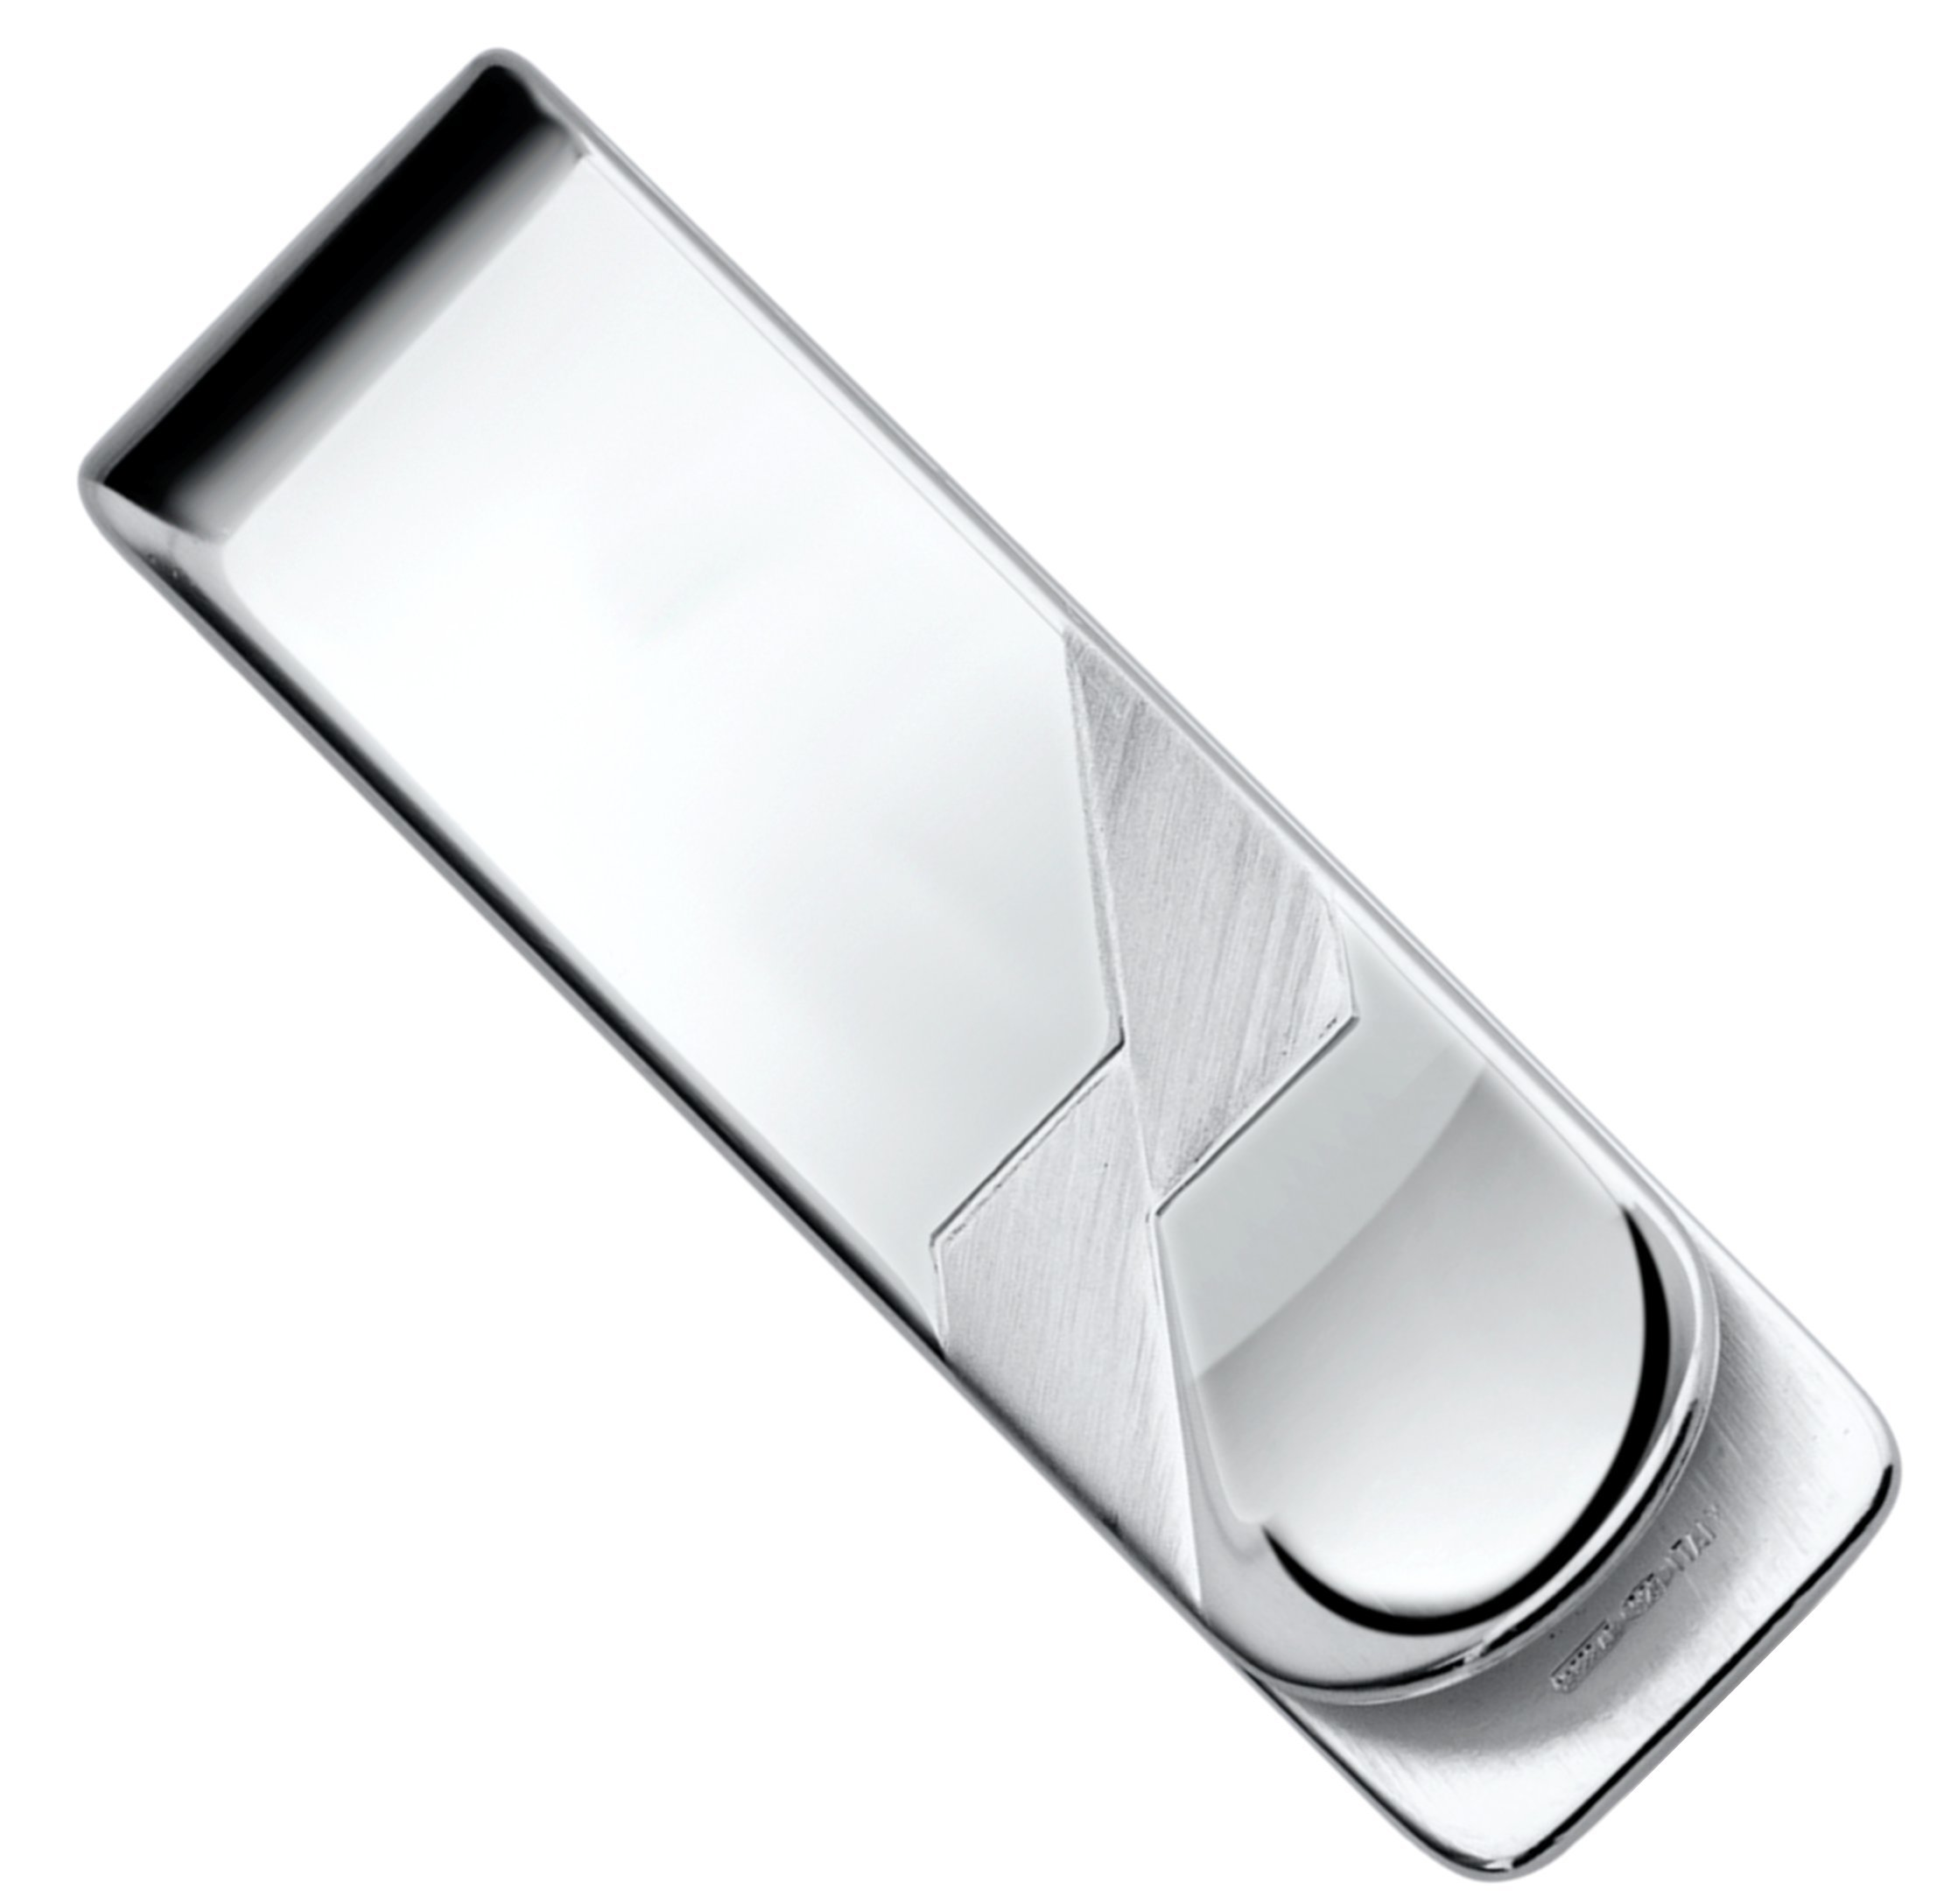 Sterling Silver .925 Money Clip Solid Design Satin Accents, Hand Polished, Engravable, Designed and Made In Italy. By Sterling Manufacturers